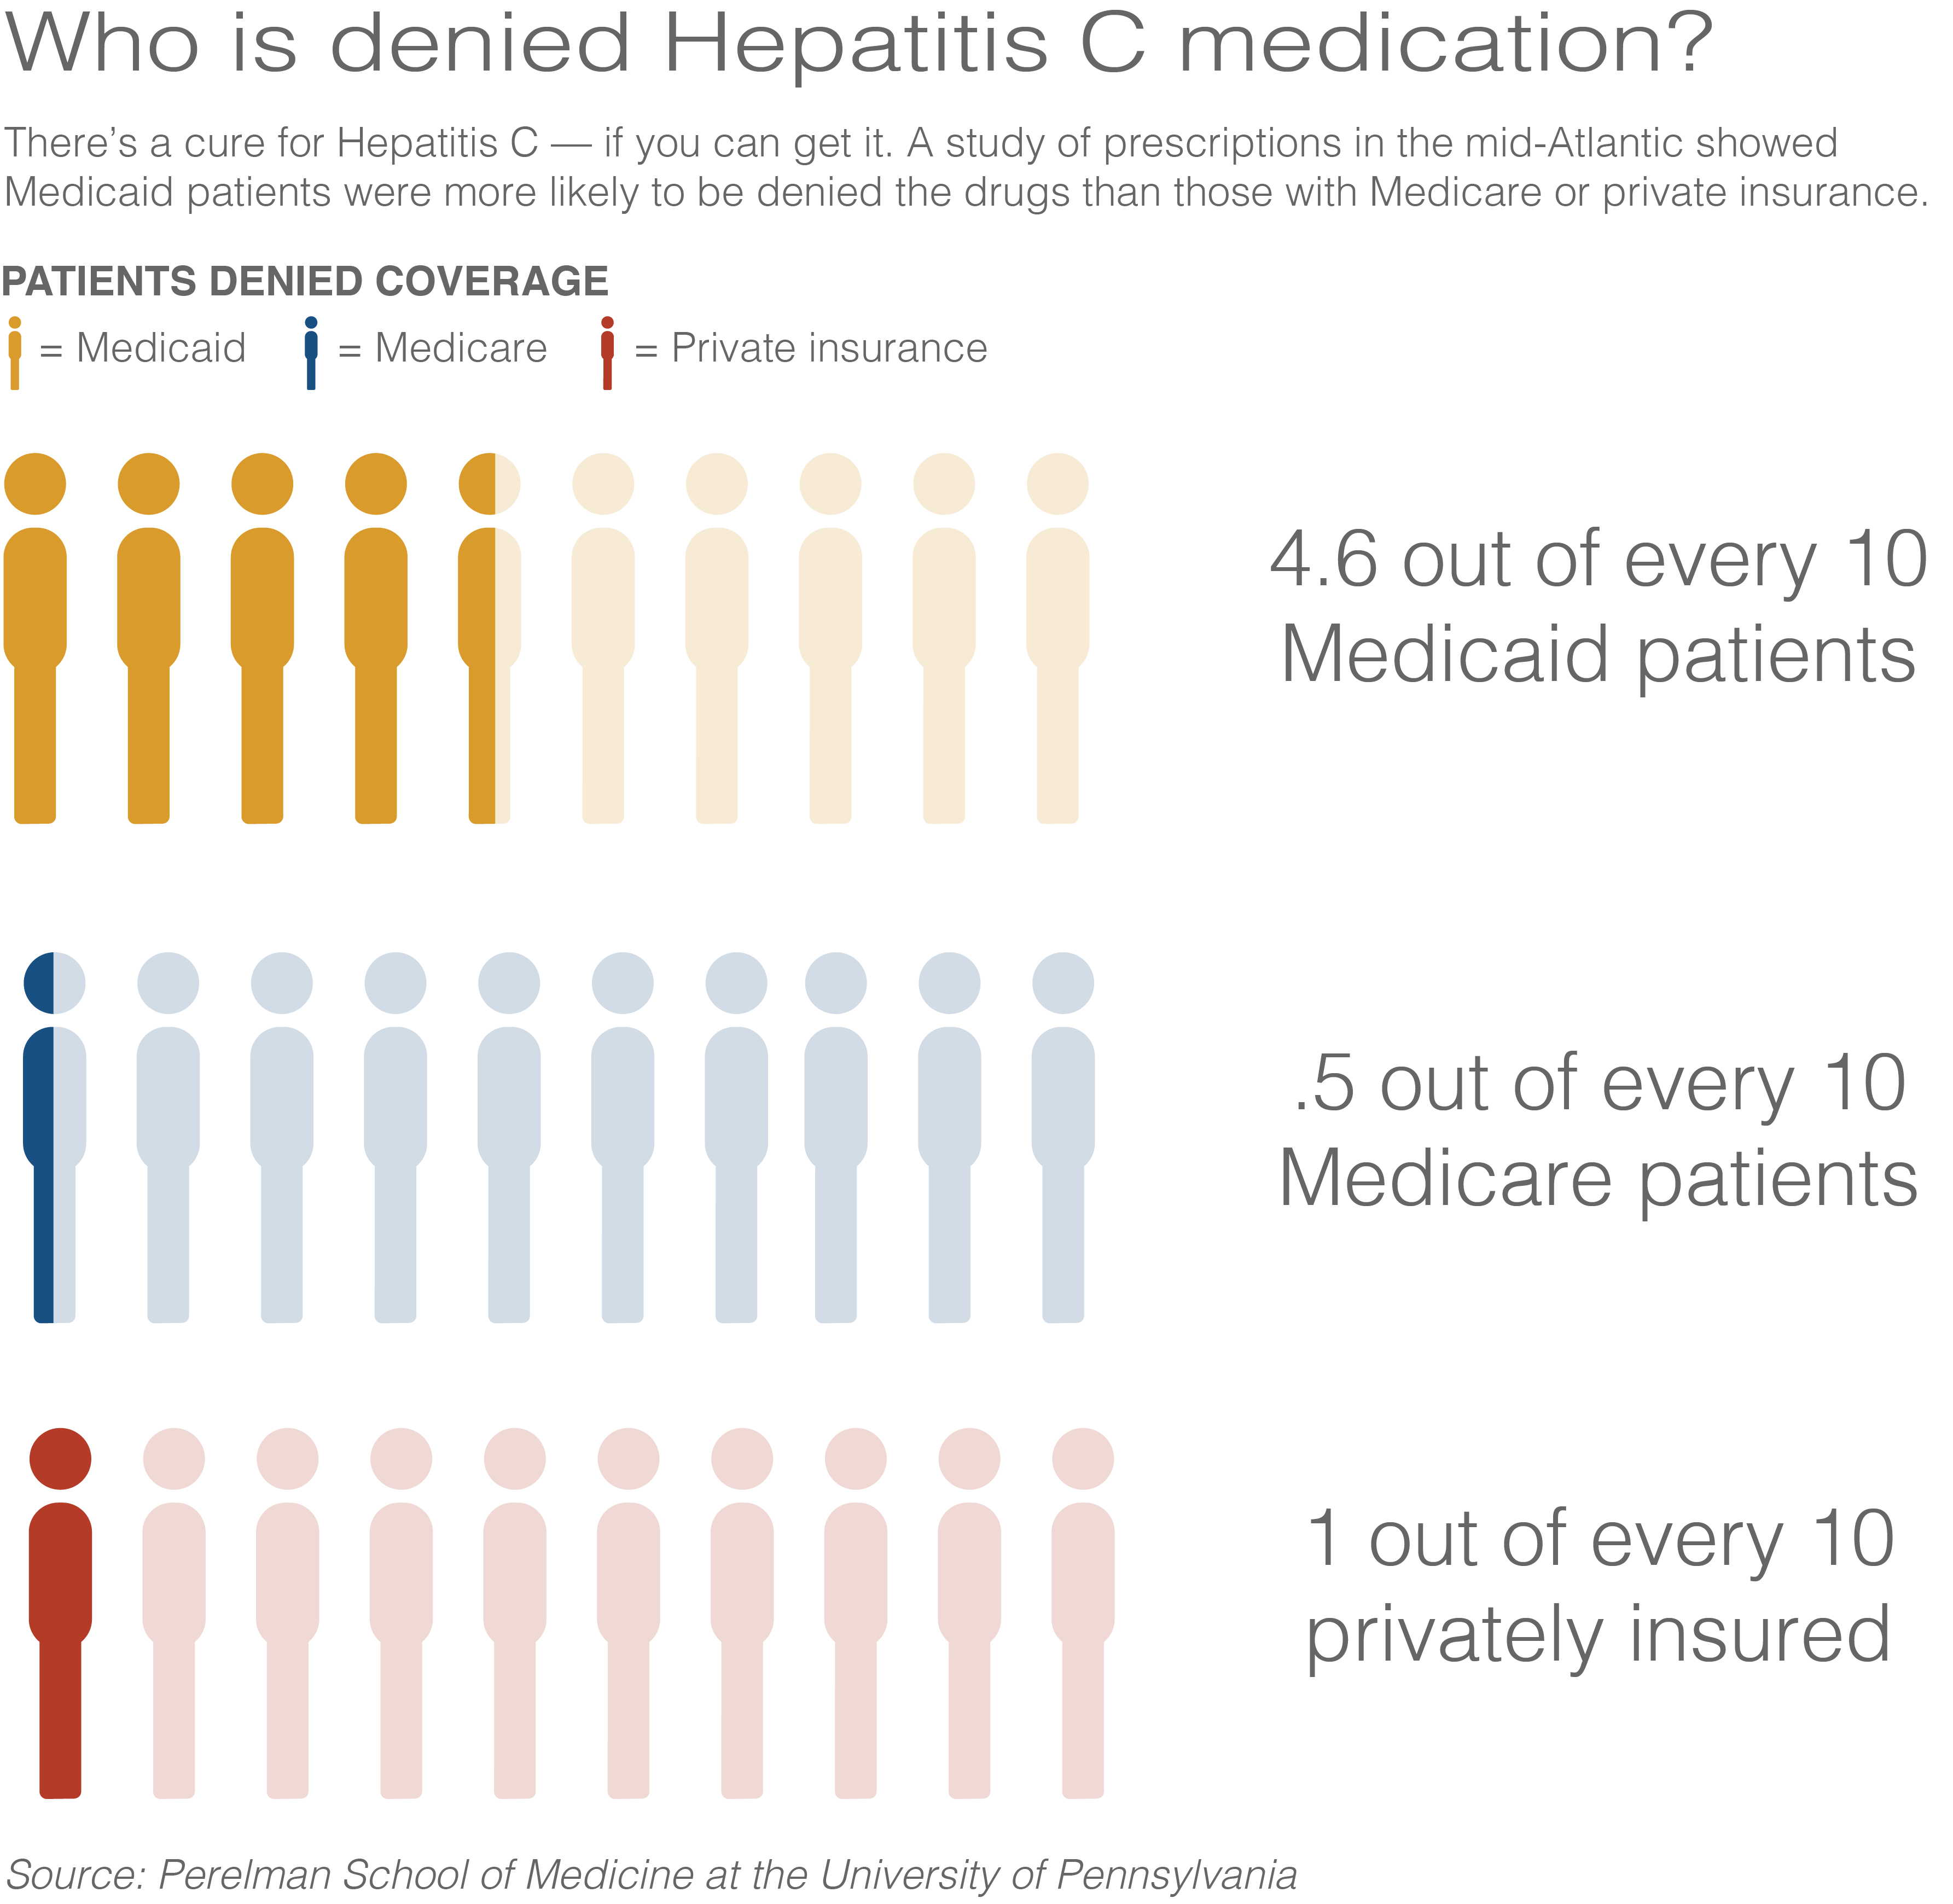 New Research From The University Of Pennsylvania's Perelman School Of  Medicine Found Both Private And Staterun Providers Frequently Reject  Hepatitis C